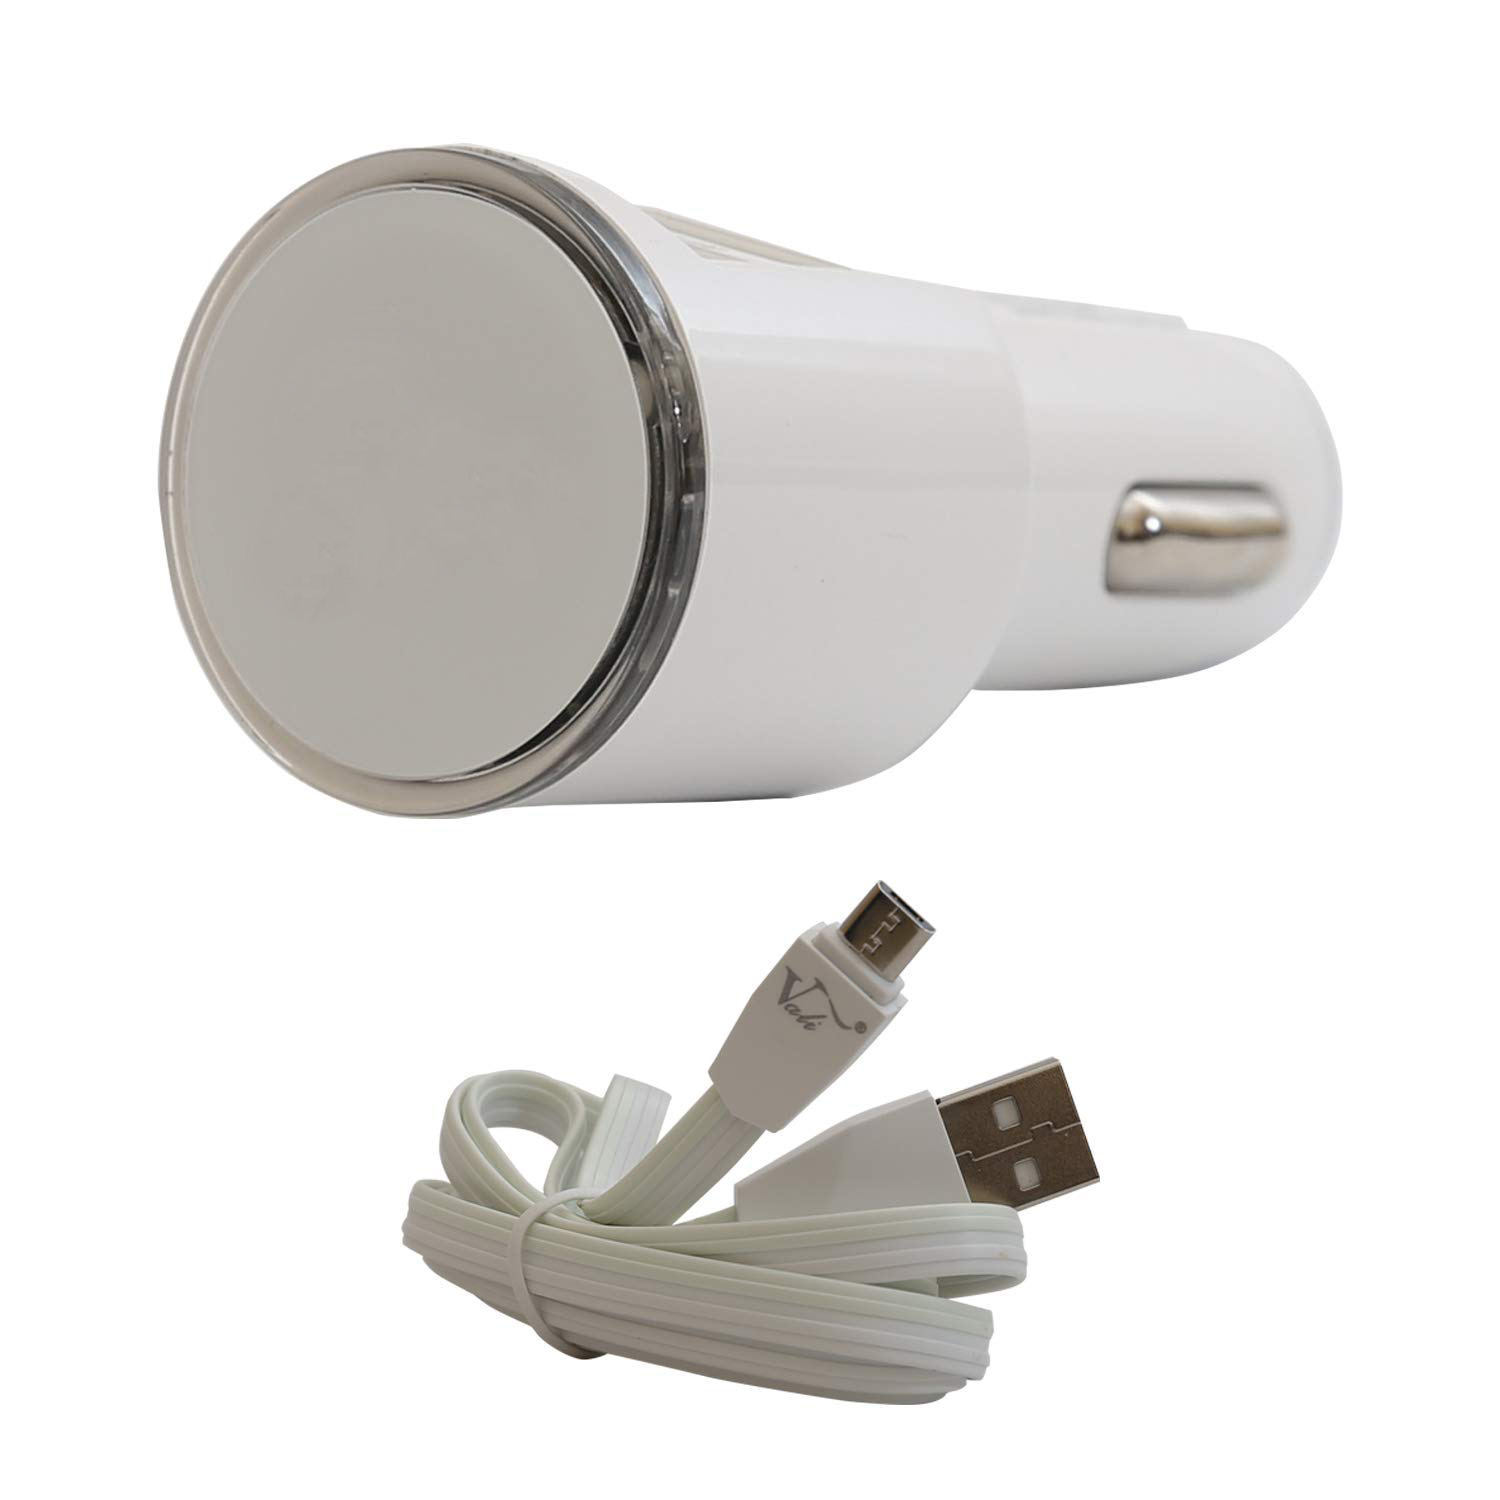 BonnyM 3.4A Car Charger with cable